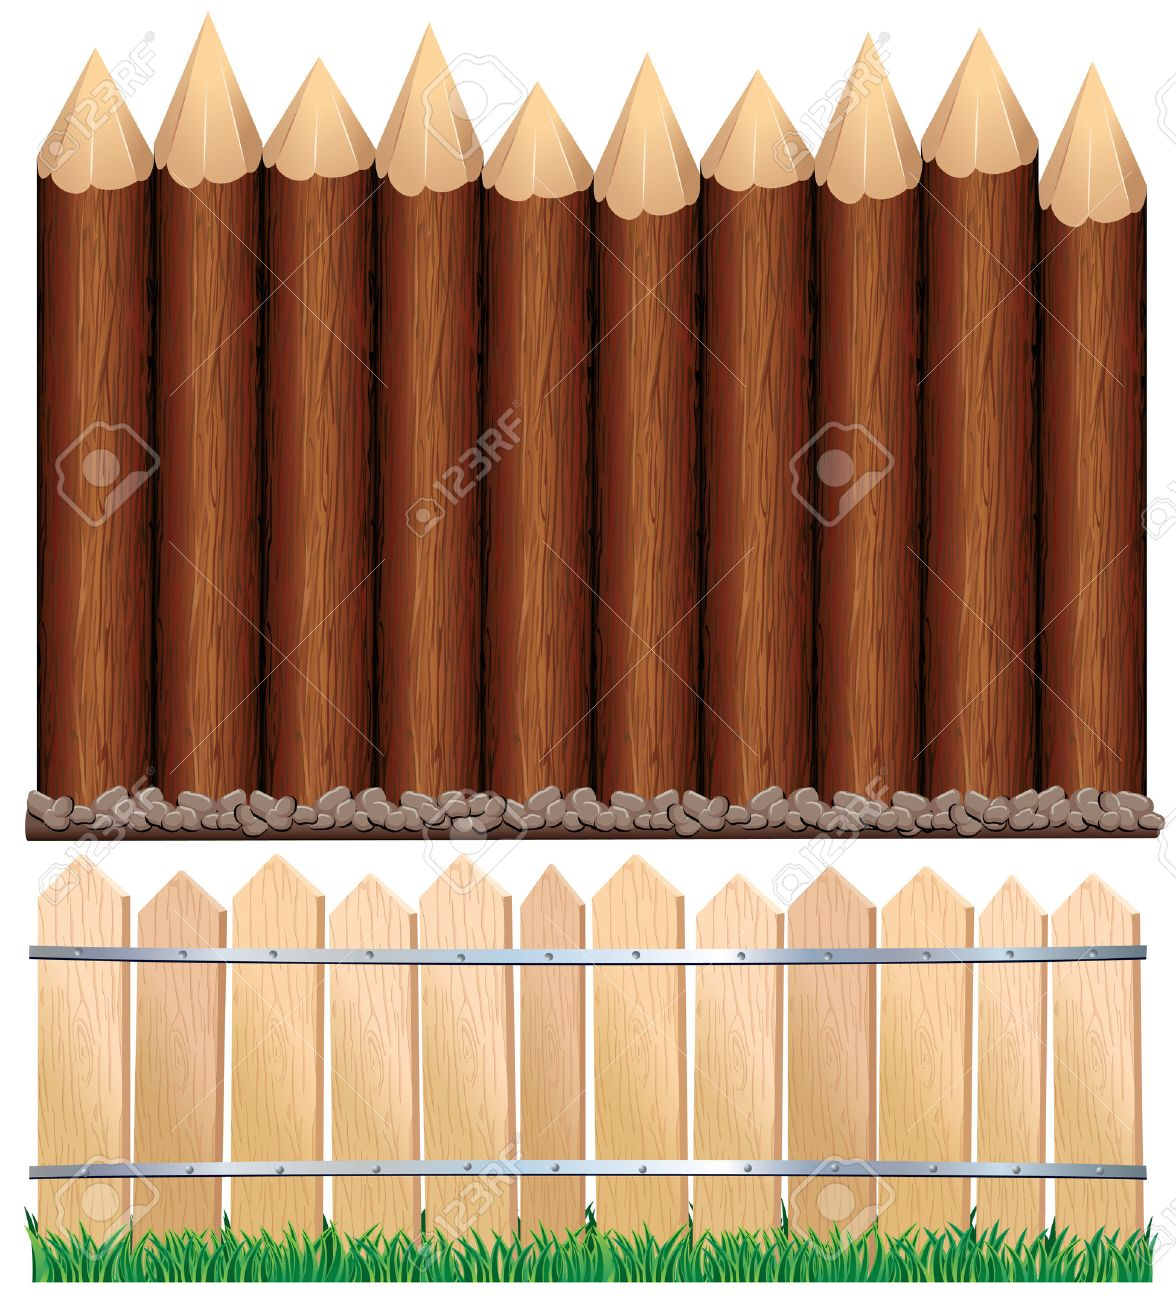 Illustration of rural wooden fence and log paling all wood illustration of rural wooden fence and log paling all wood elements separated and grouped stock baanklon Images